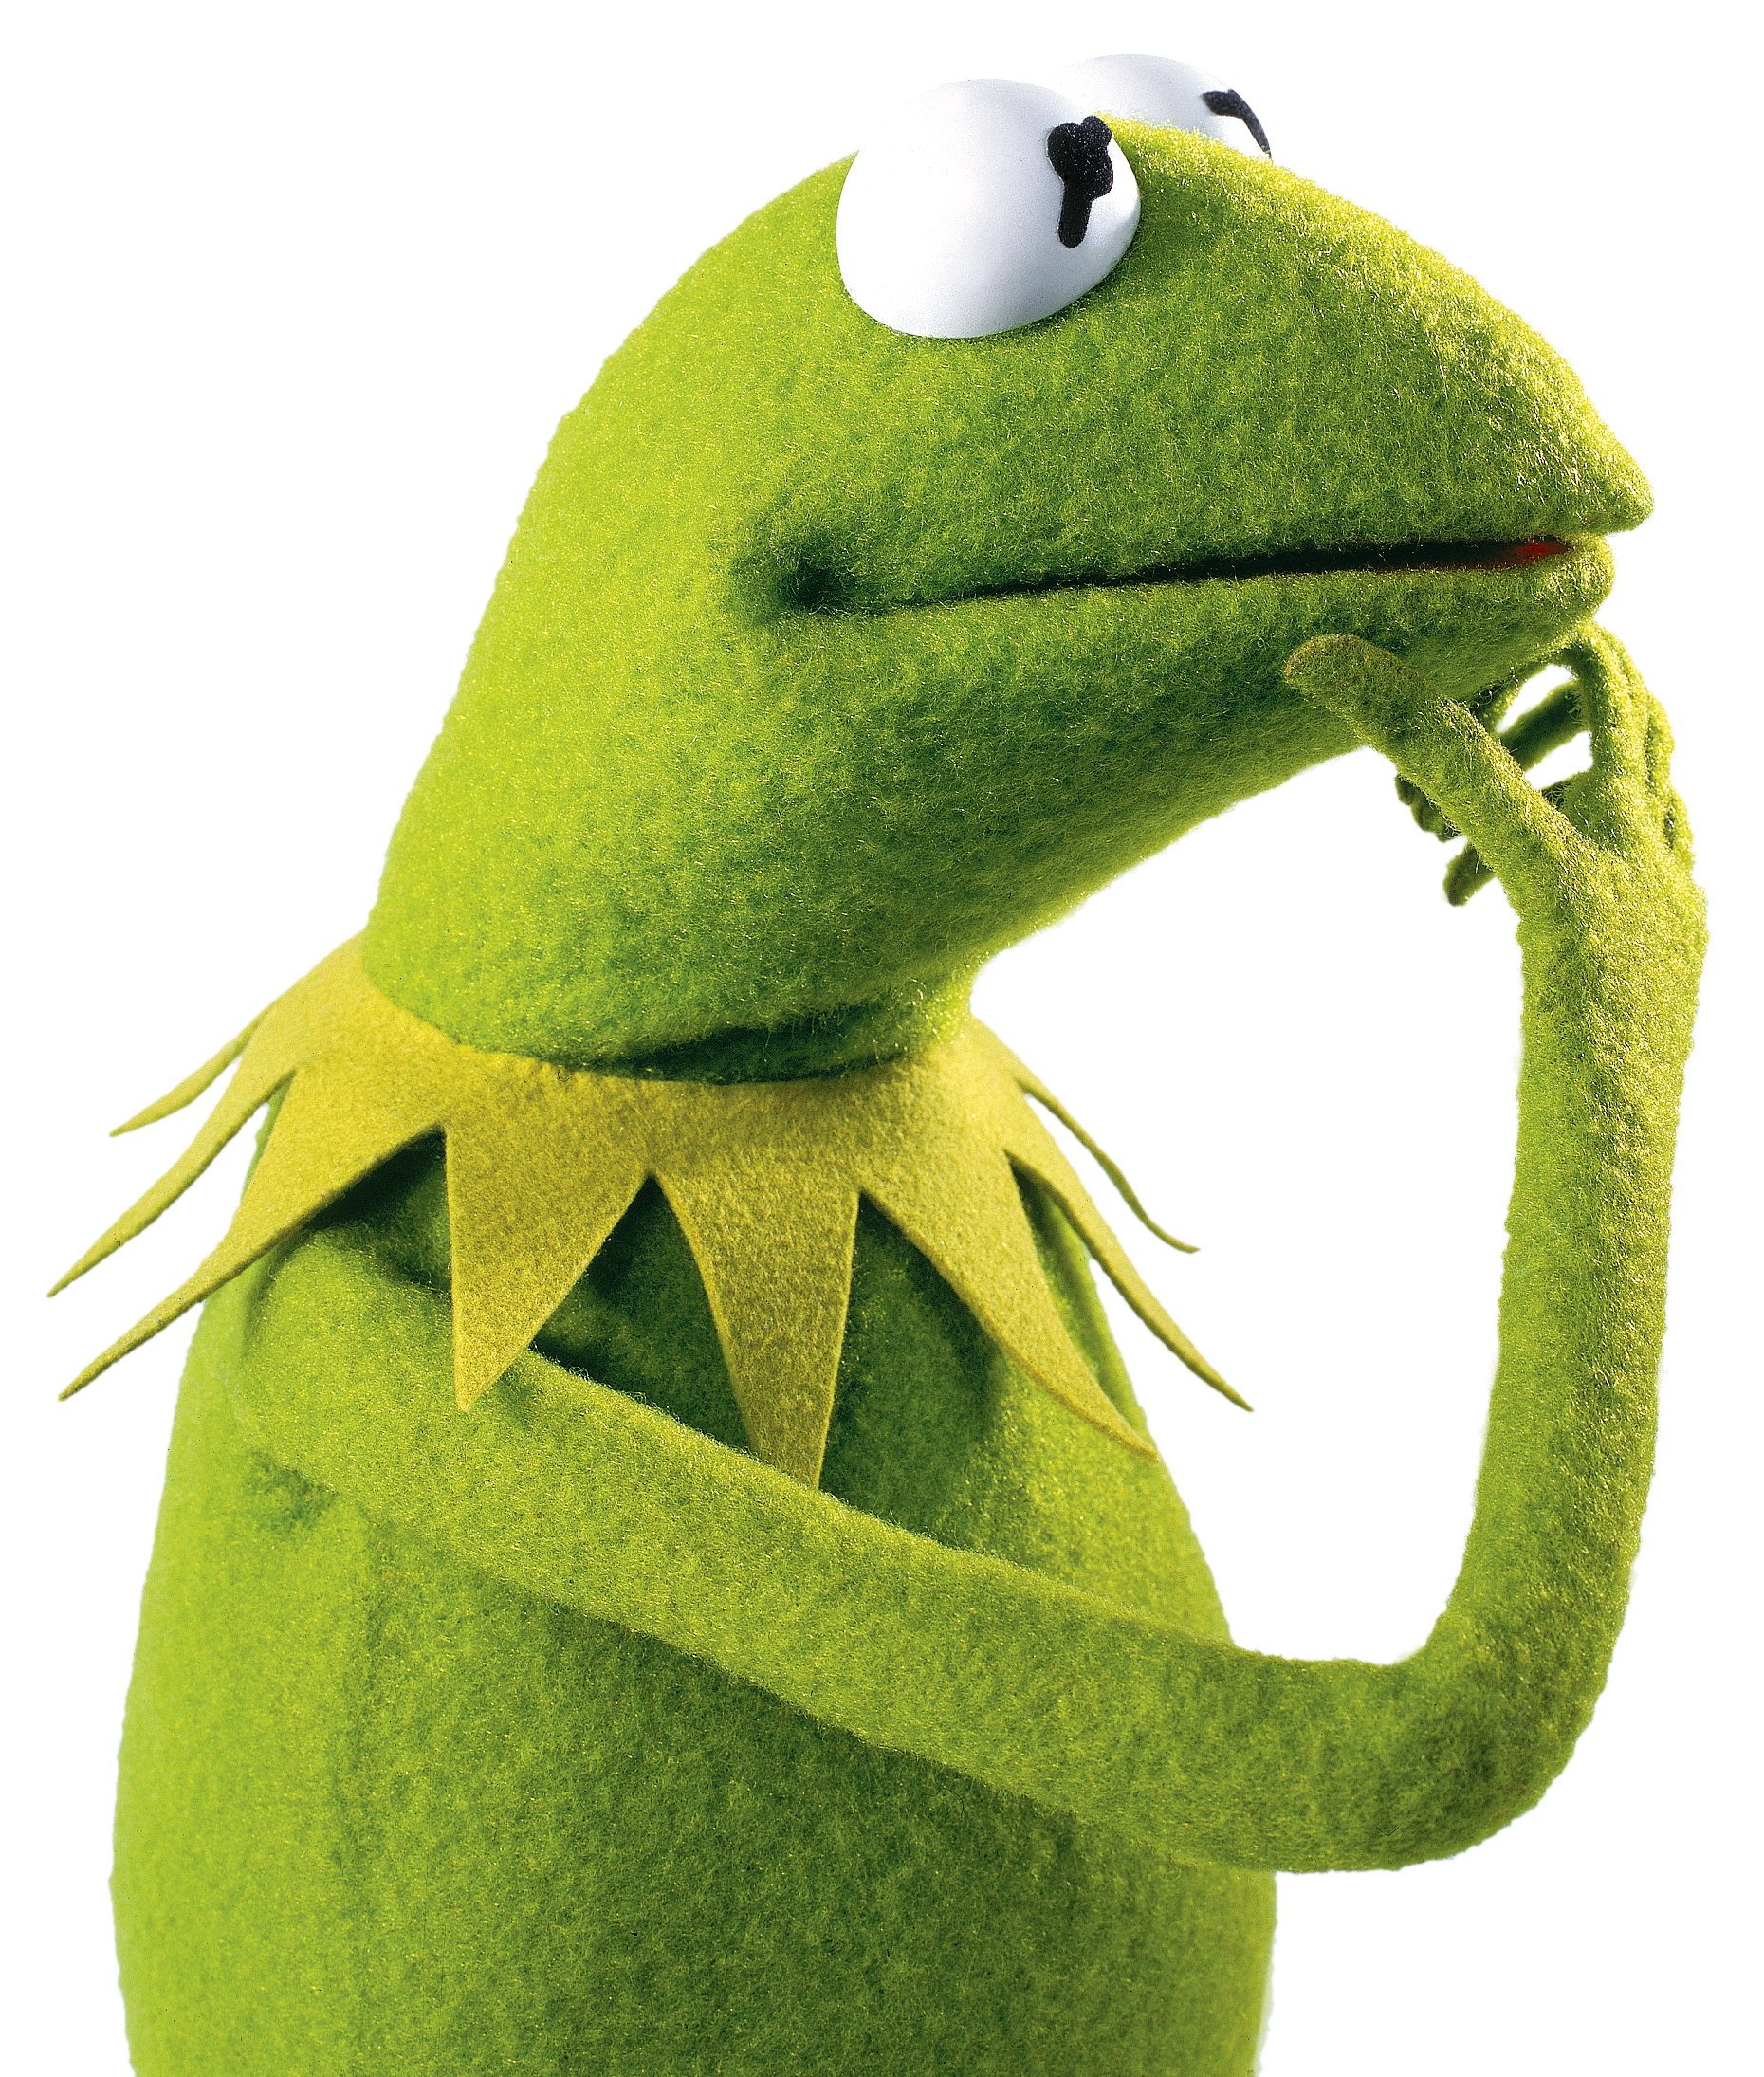 Image - Kermit-contemplating.png | Disney Wiki | FANDOM powered by Wikia - Kermit PNG